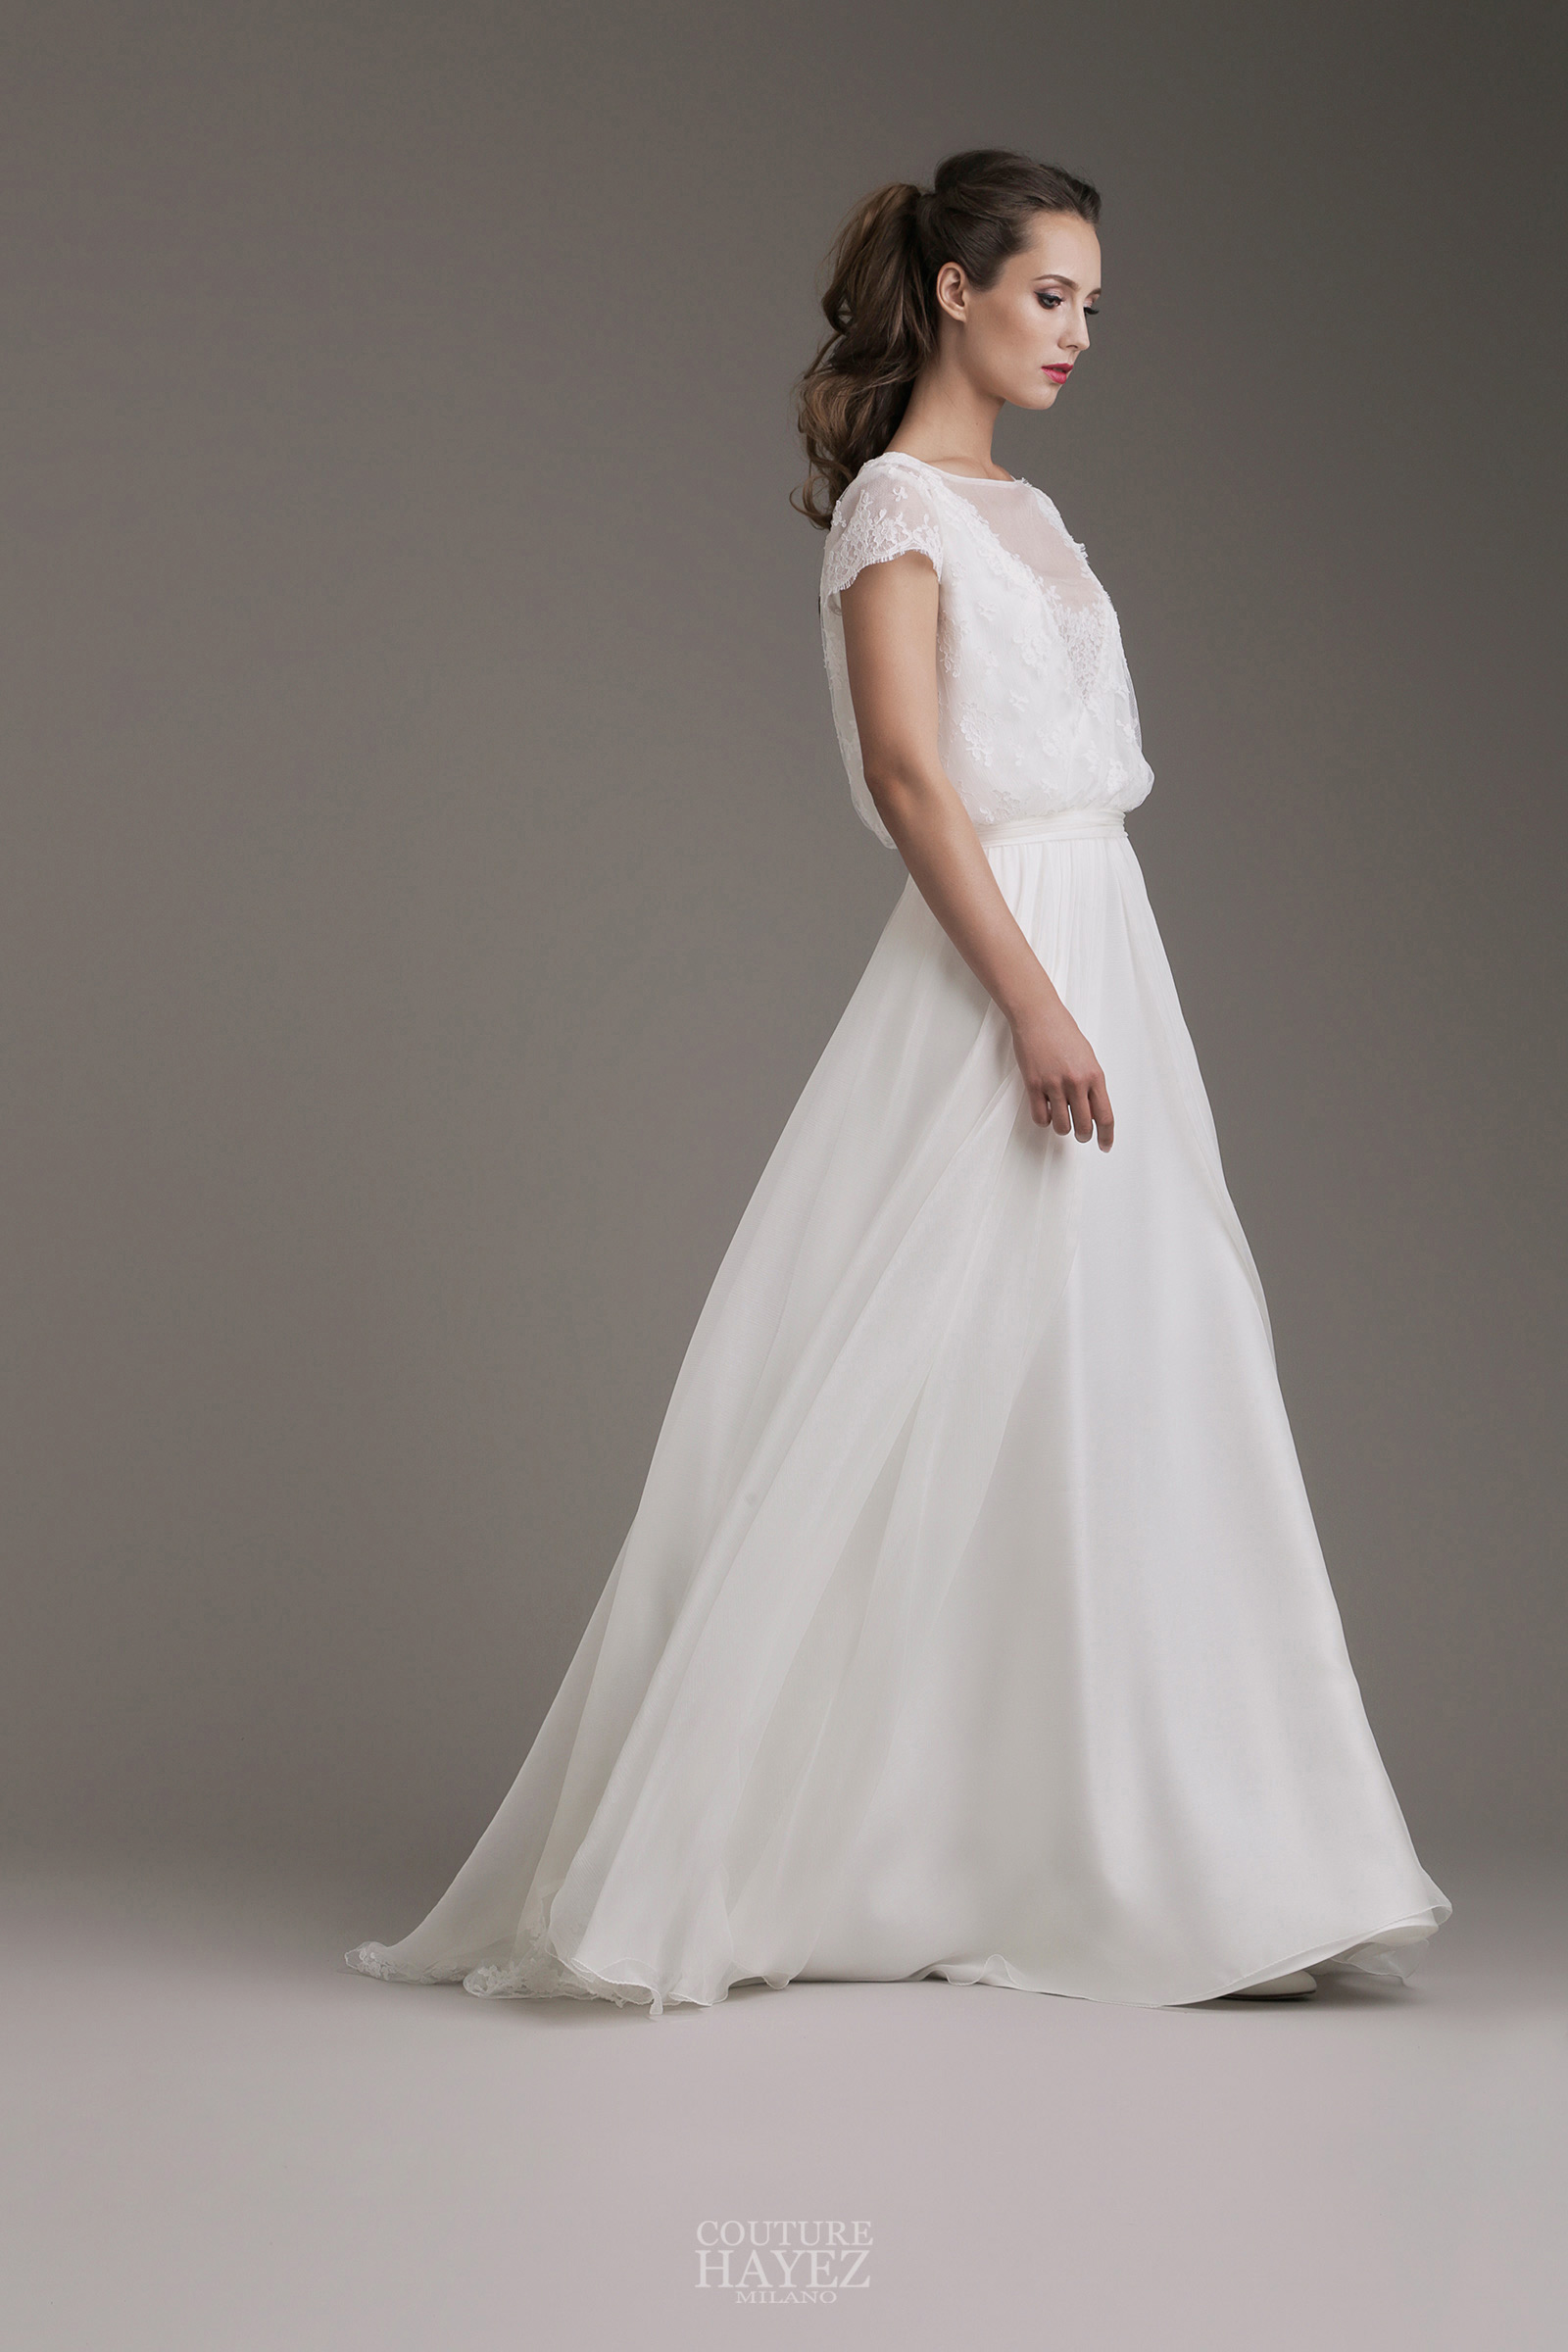 60511265d615 Kylie  abito sposa in chiffon e pizzo francese - Couture Hayez Milano